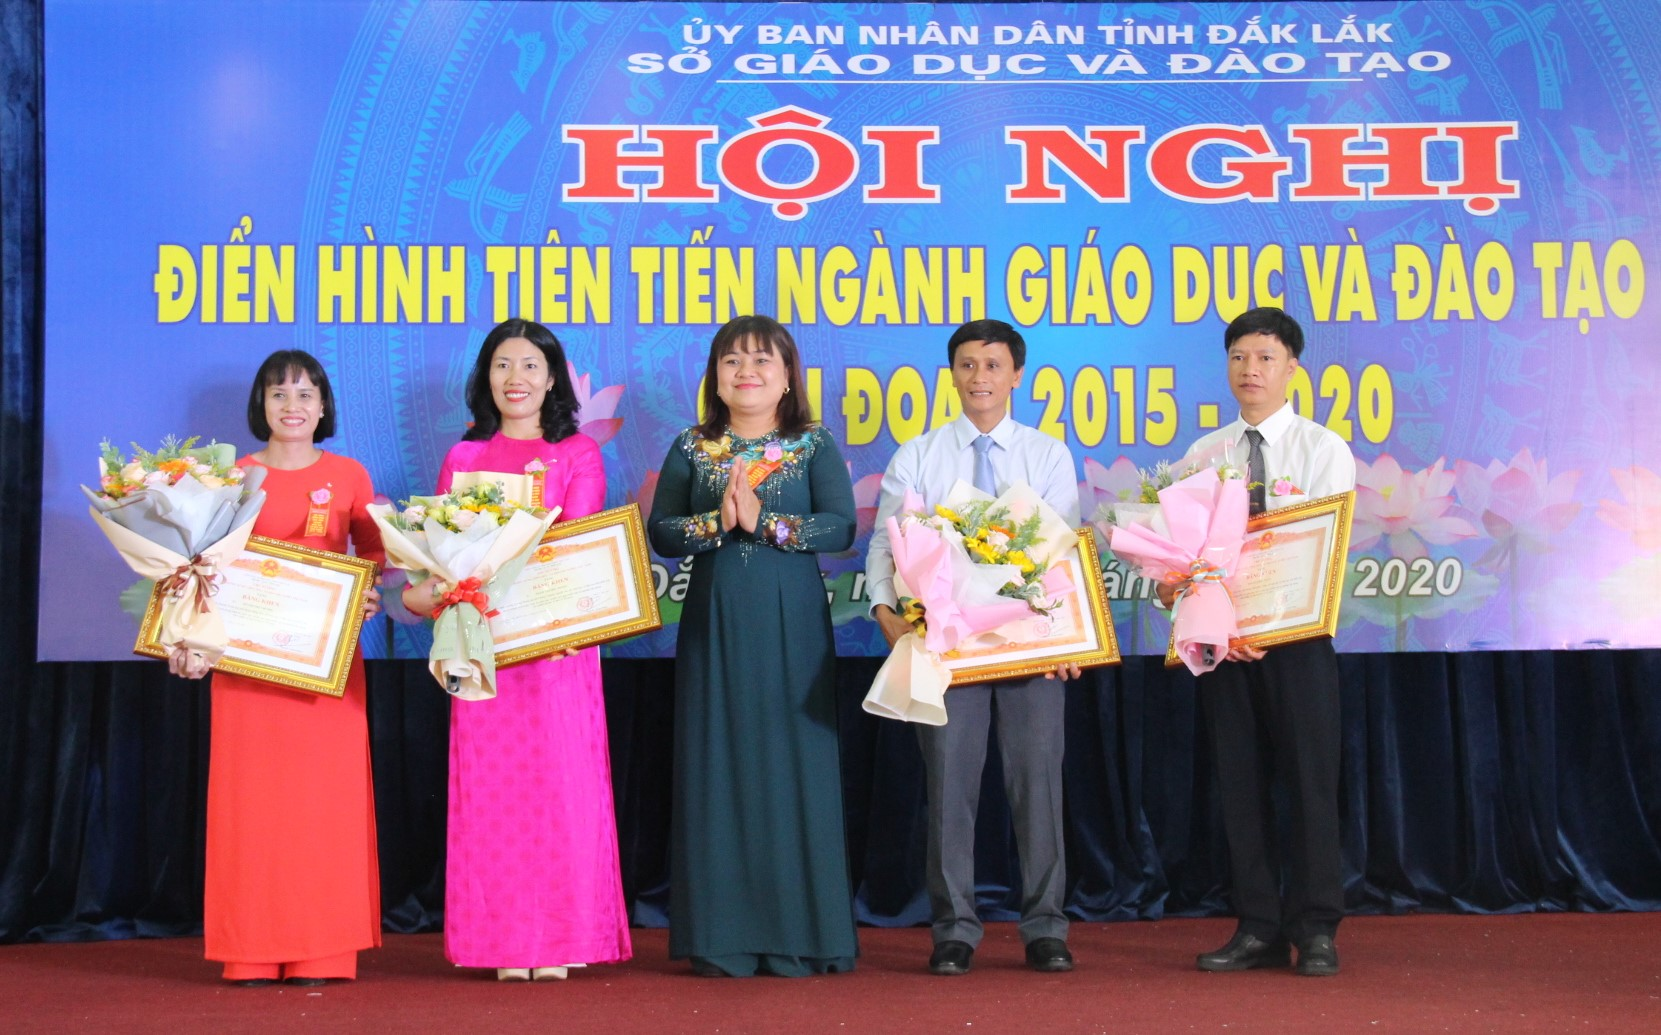 Honoring typical examples of Dak Lak Education and Training sector in the 2015-2020 period